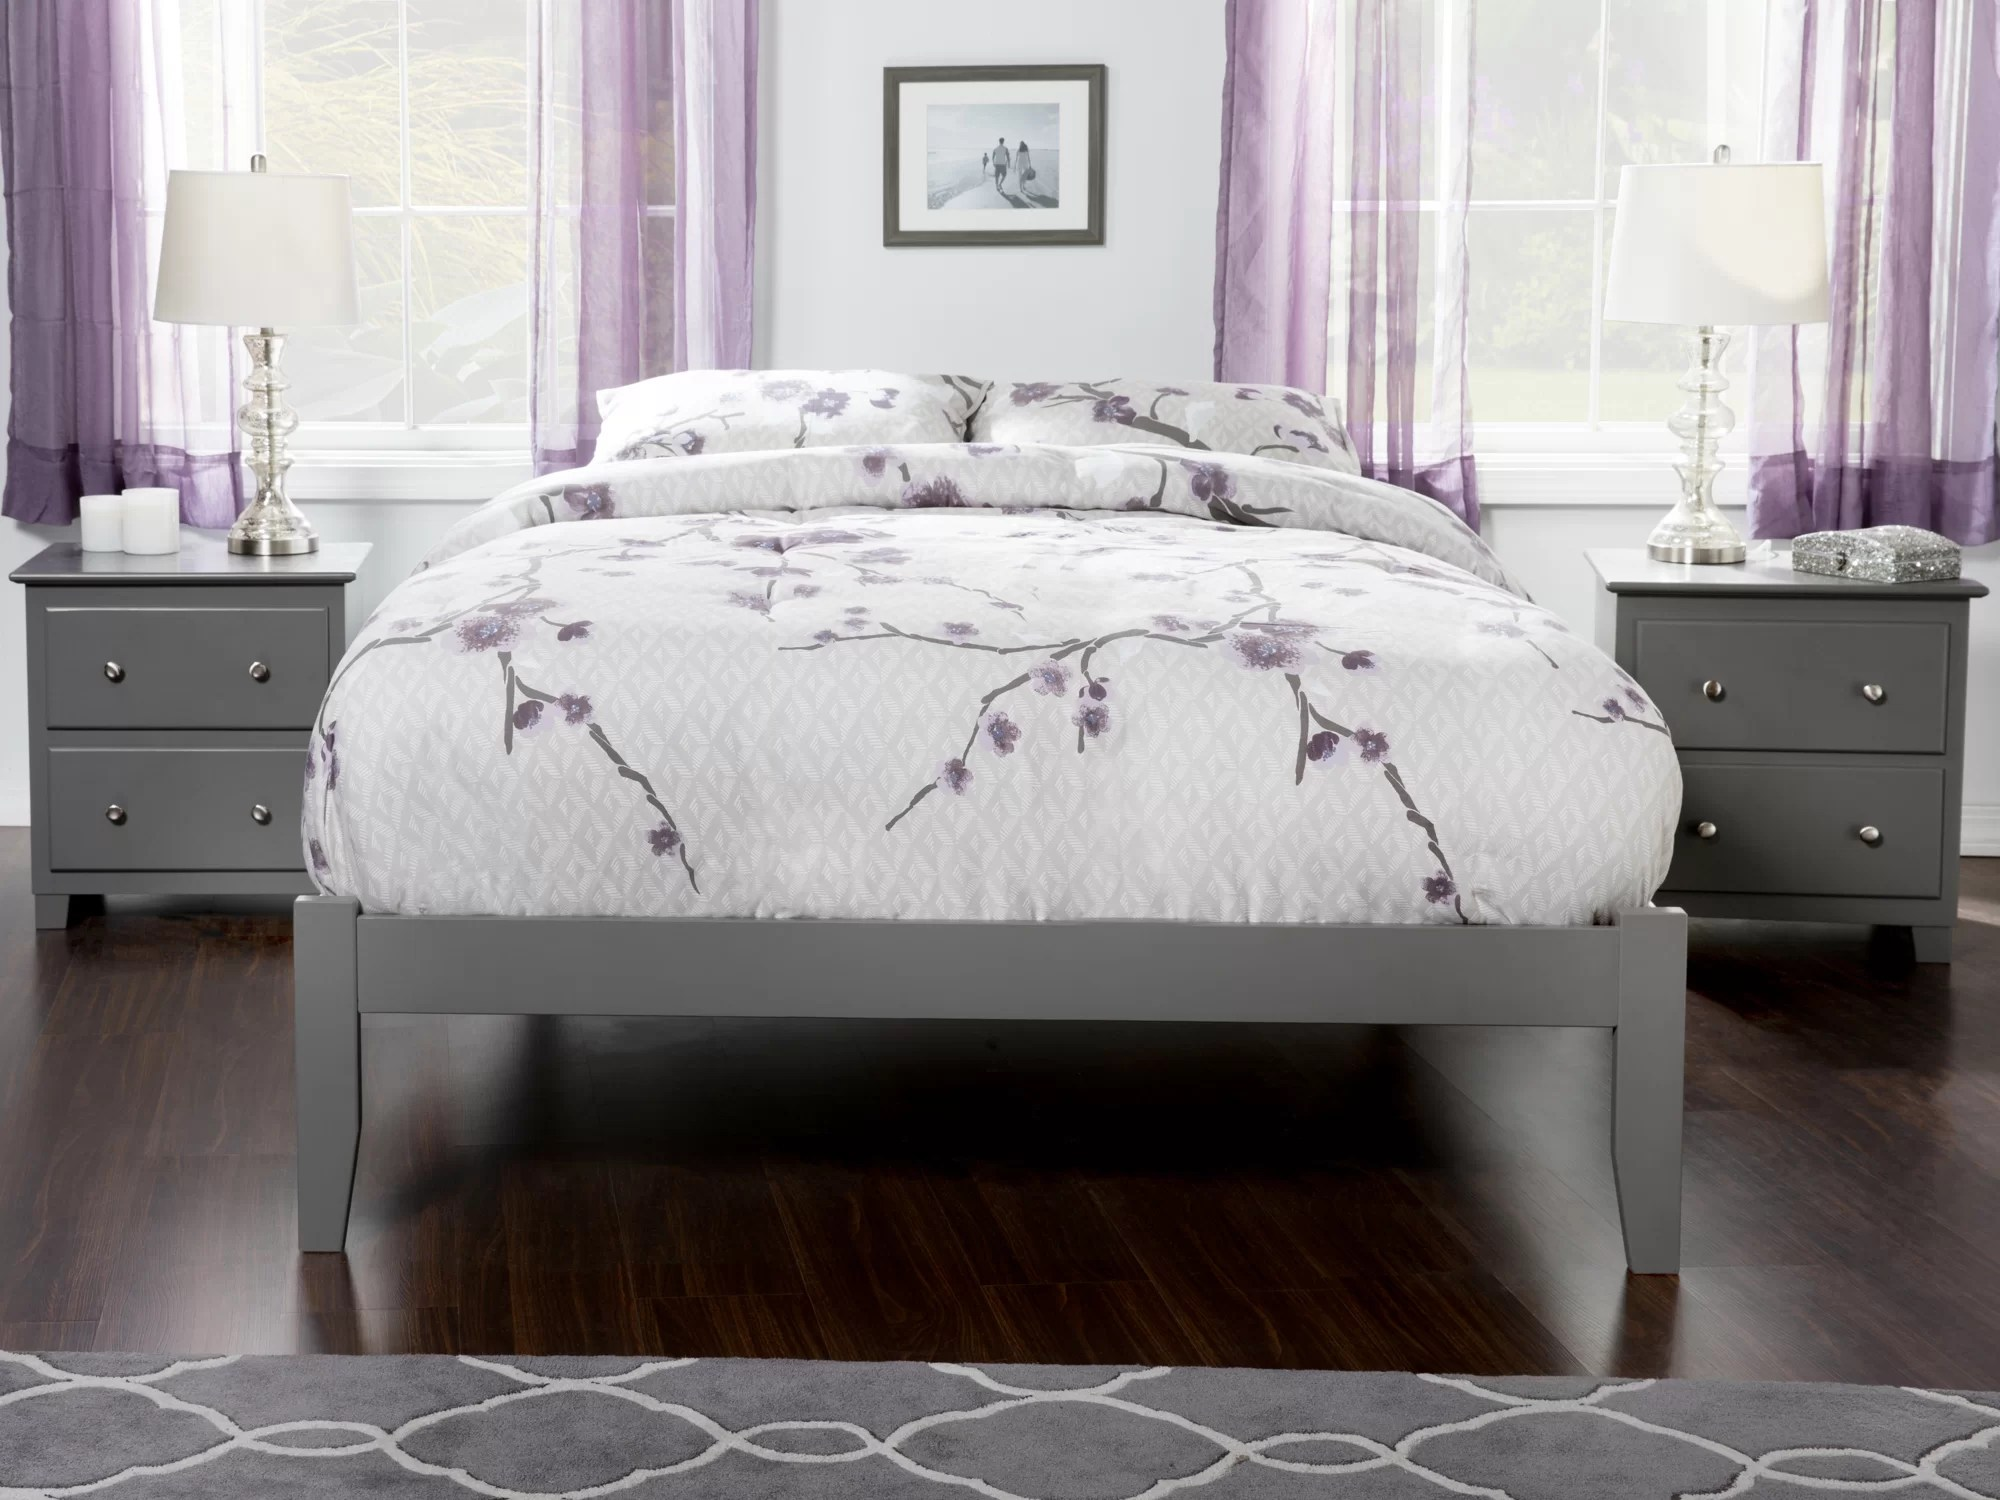 Full Double Bed Rola Full Double Platform Bed With Open Footboard